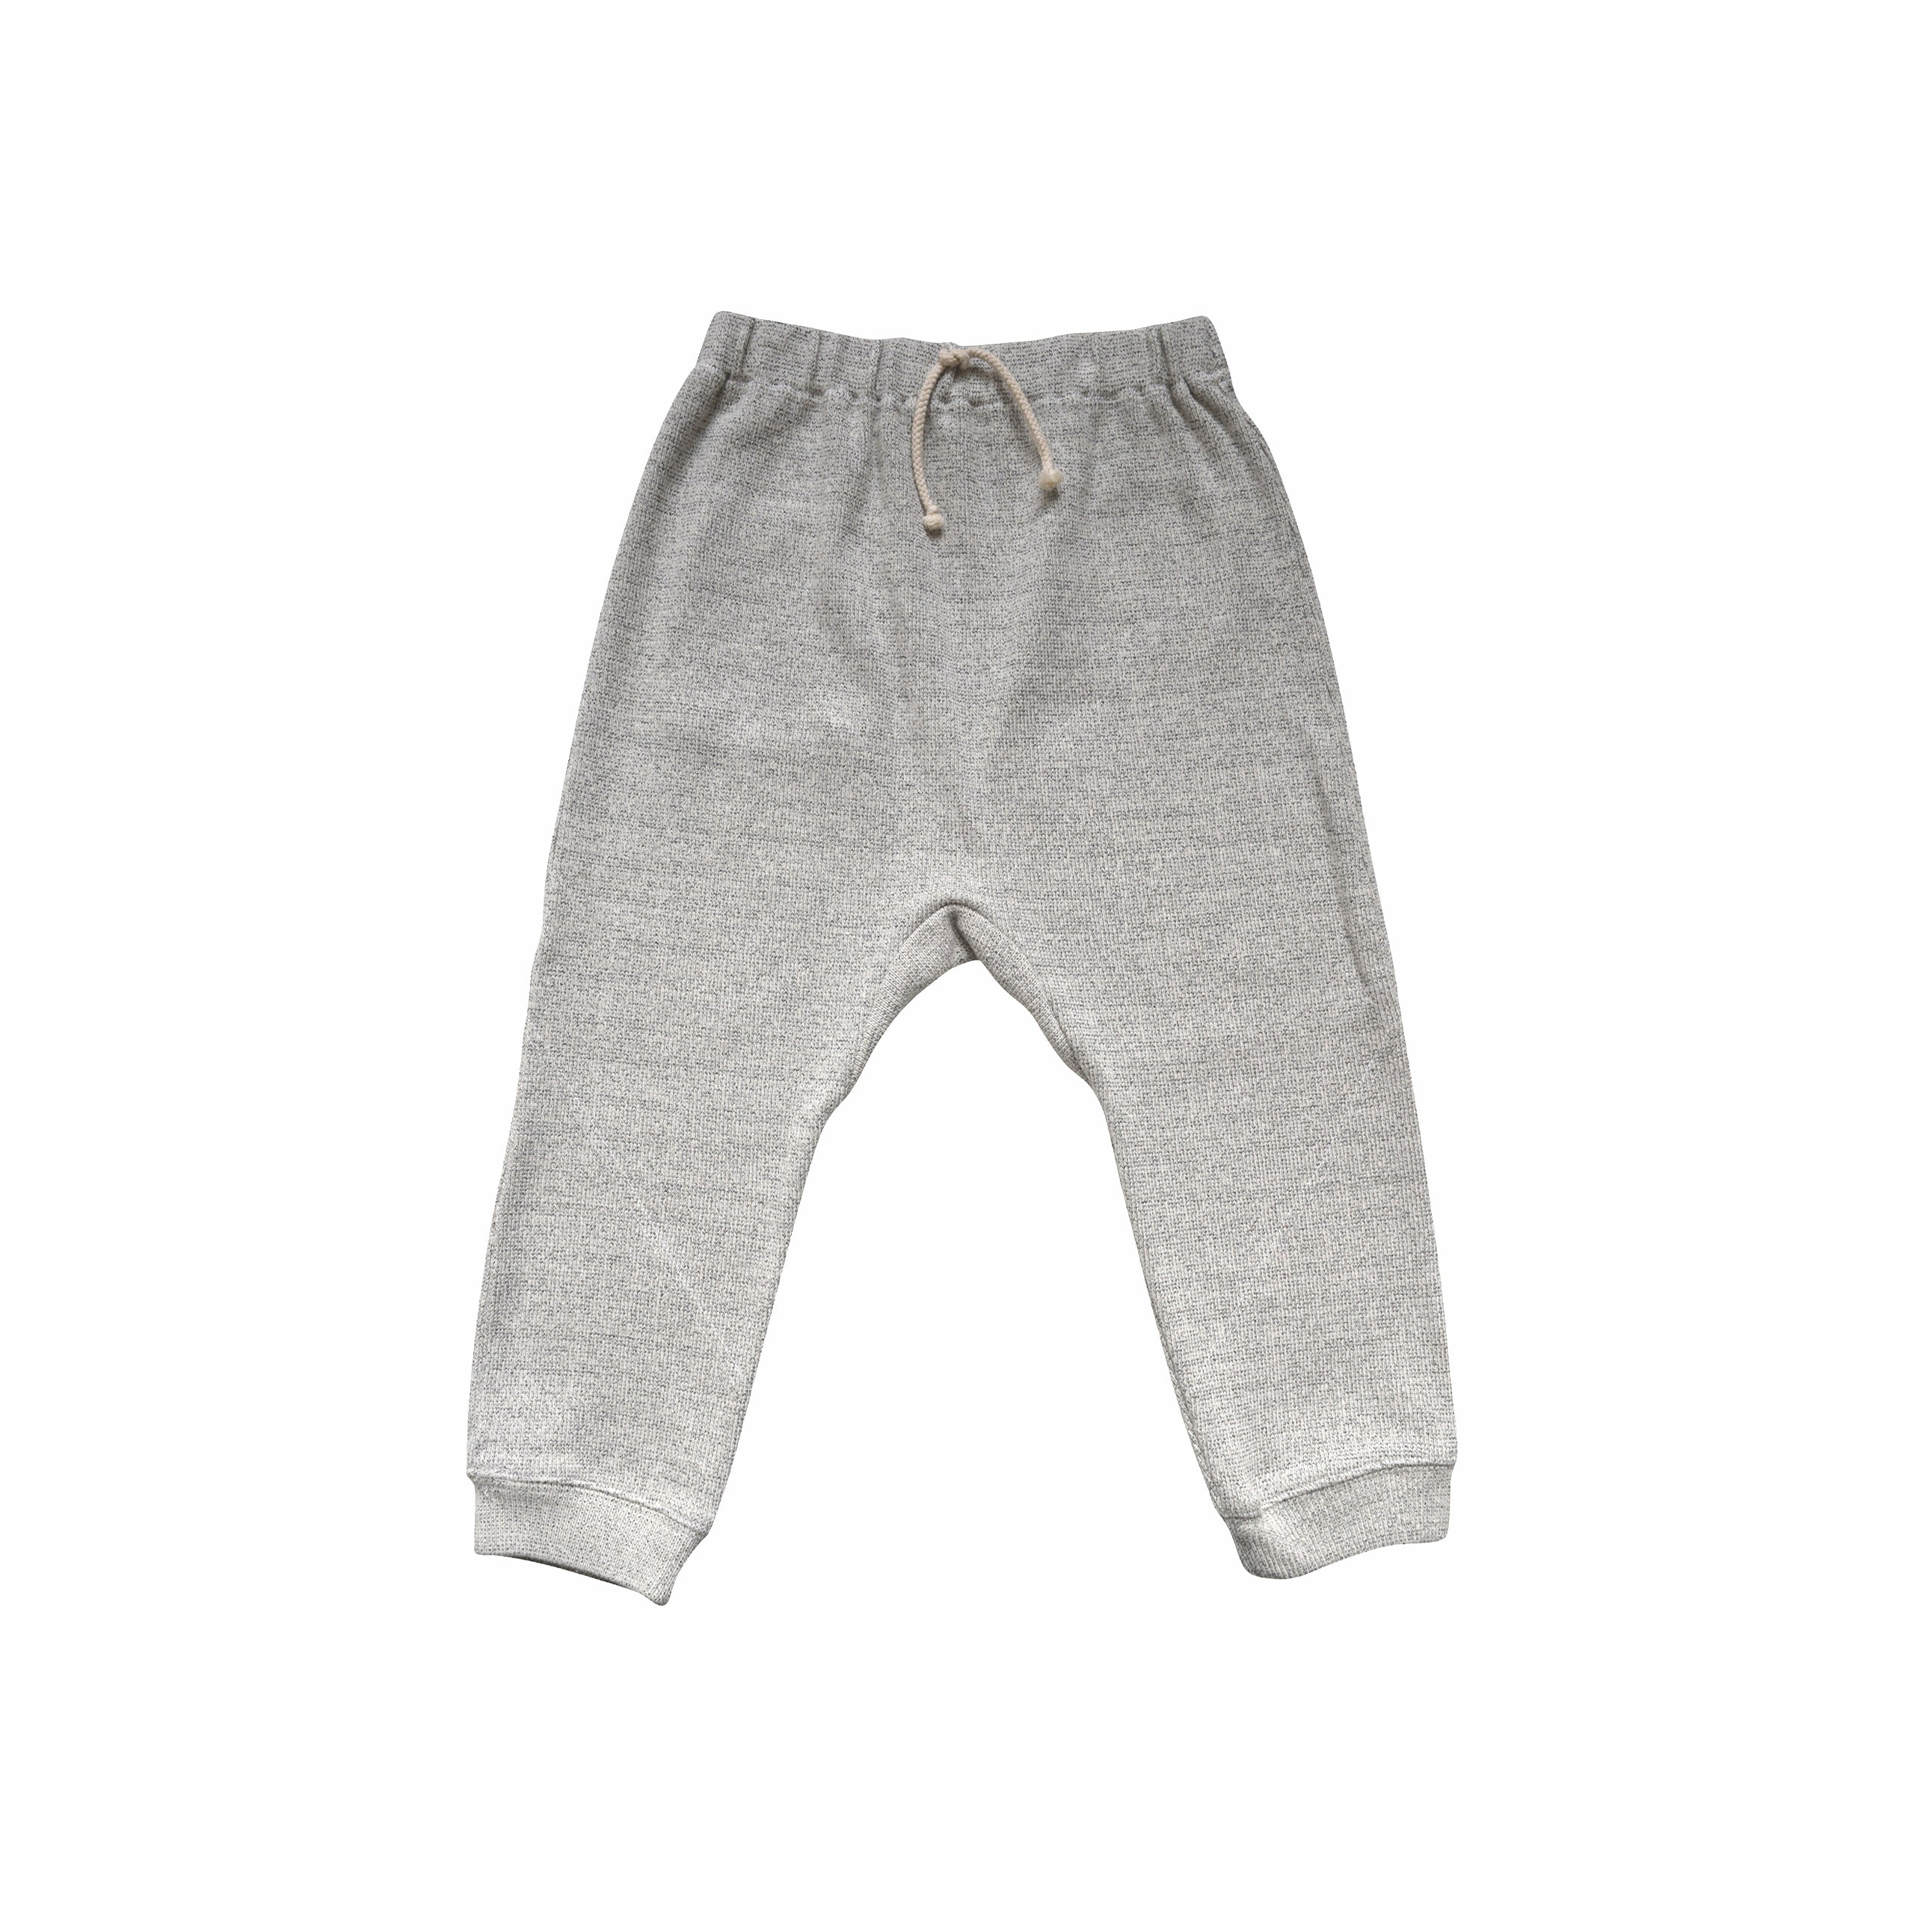 Nico Nico Sera Kid's Sweat Pant Snow Heather | BIEN BIEN www.bienbienshop.com